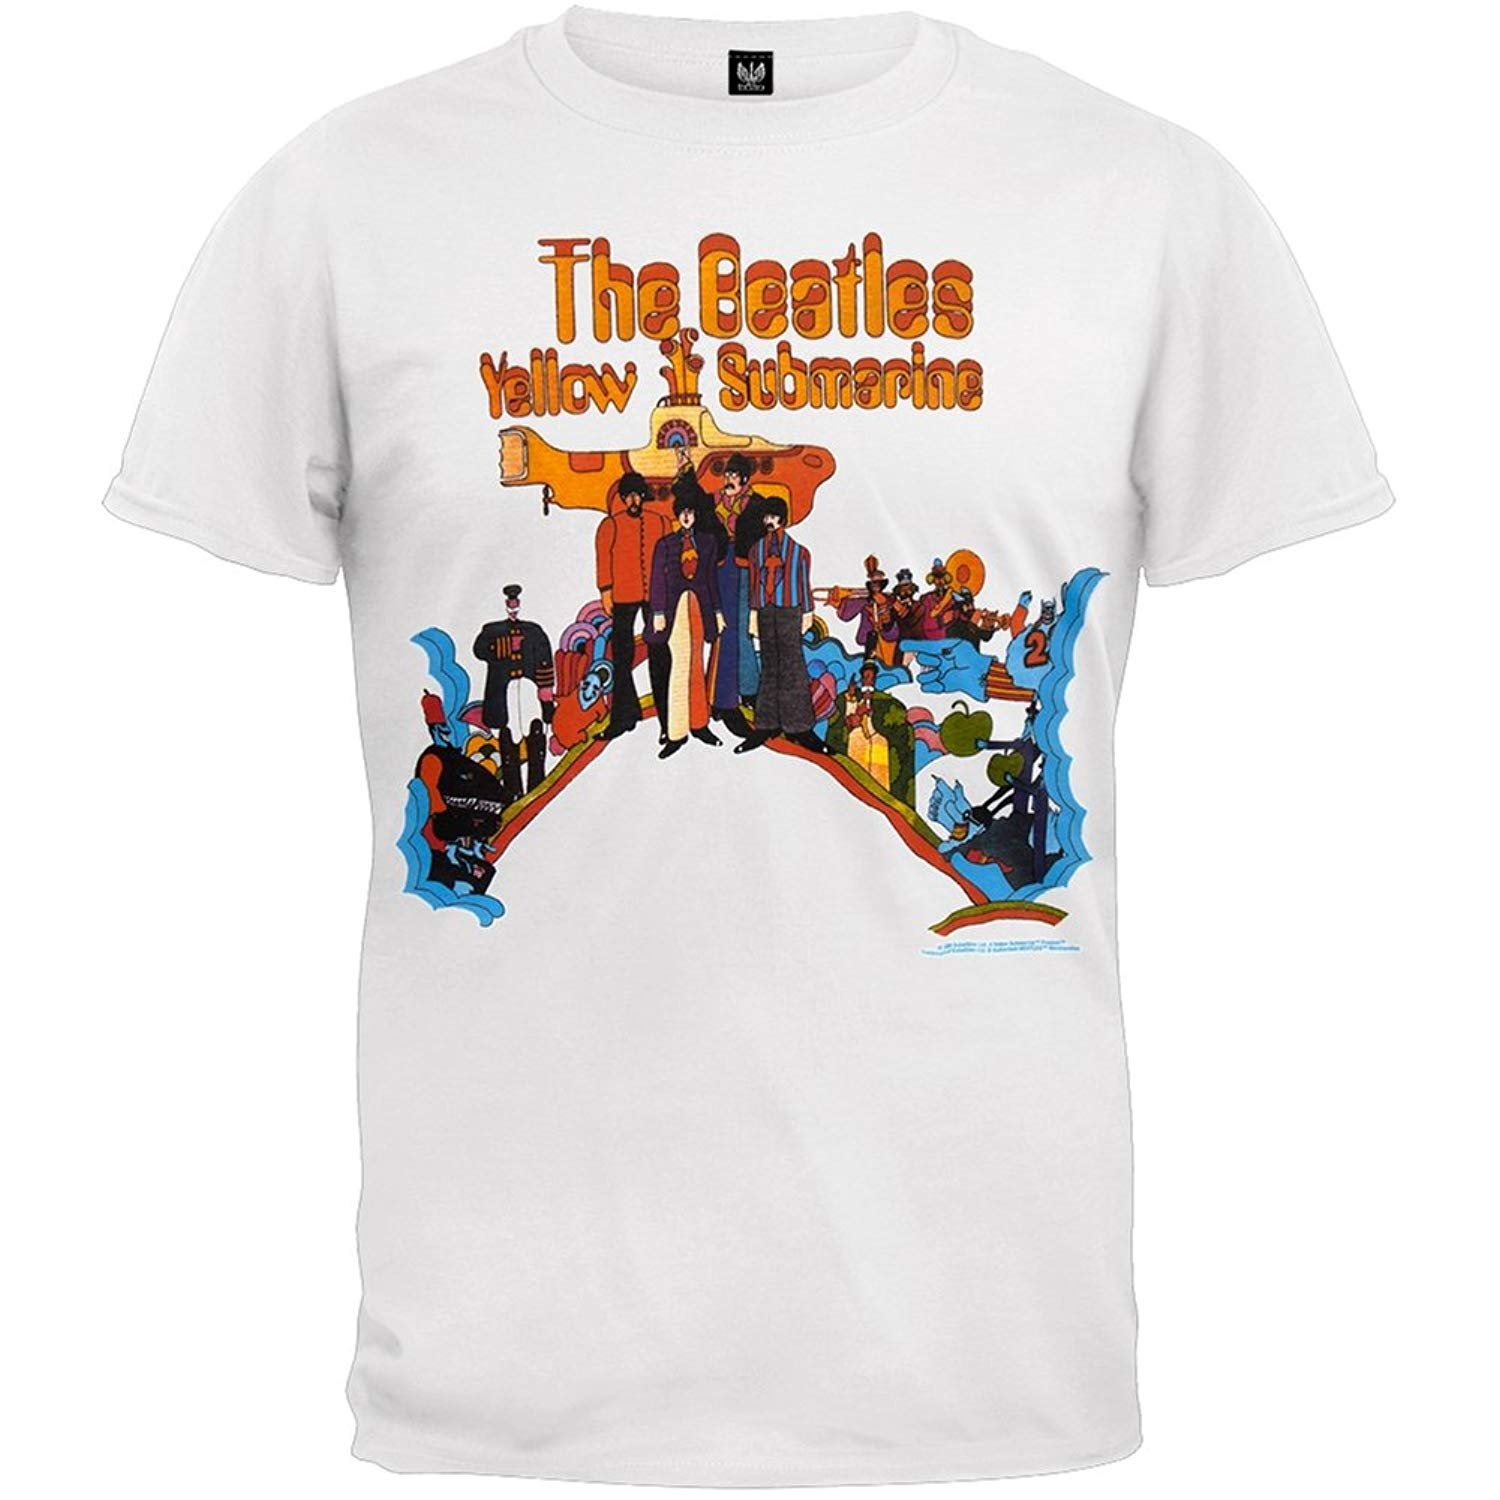 The Movie Poster T Shirt